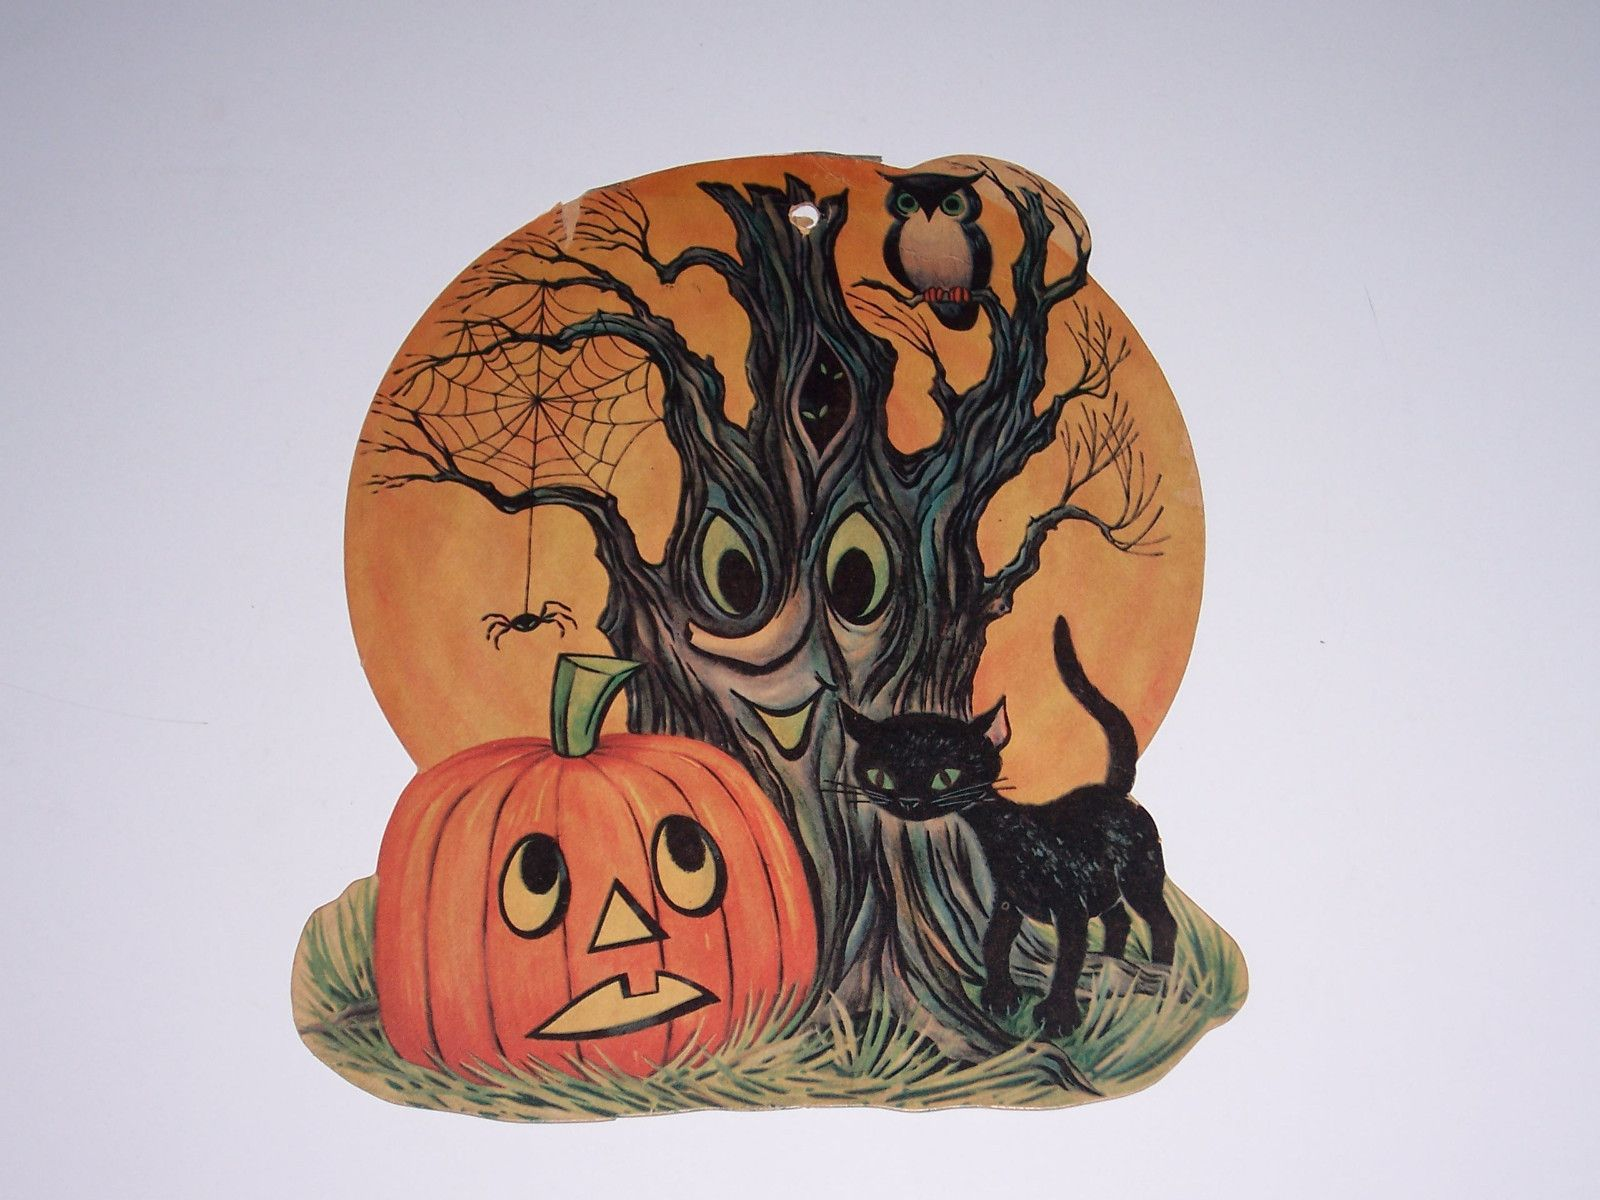 spooky tree scares jol as black cat owl and spider look on  [ 1600 x 1200 Pixel ]